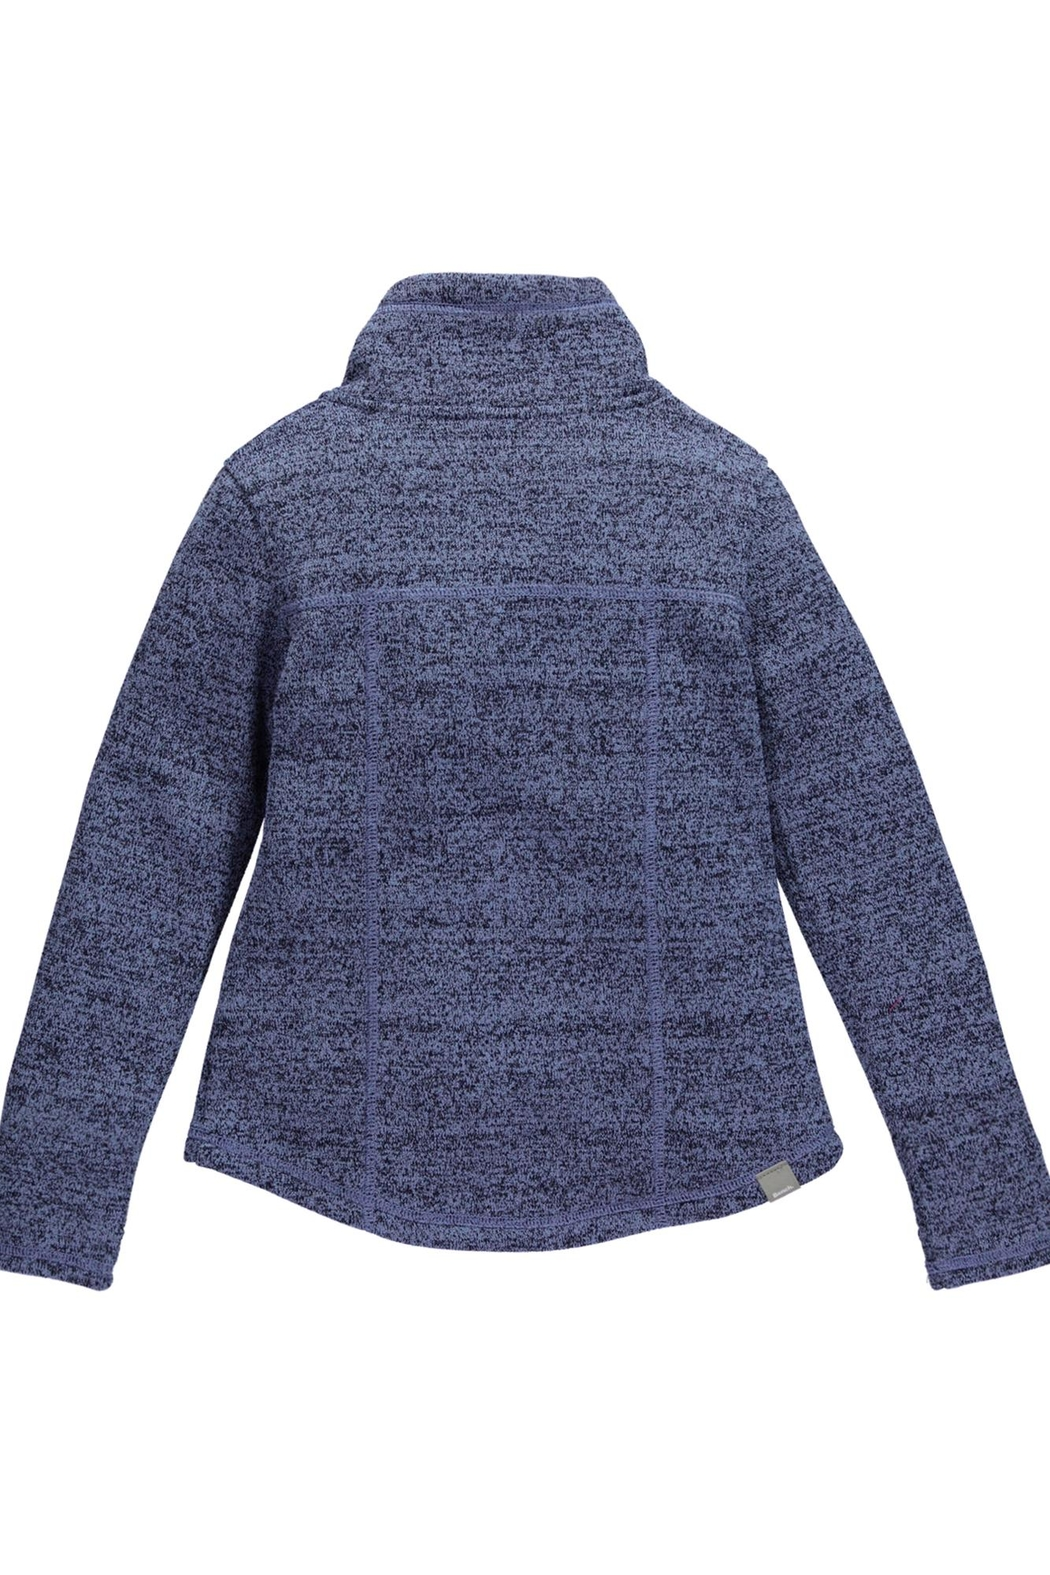 Bench Bonded Funnel Neck Sweater From Canada By Charlotte